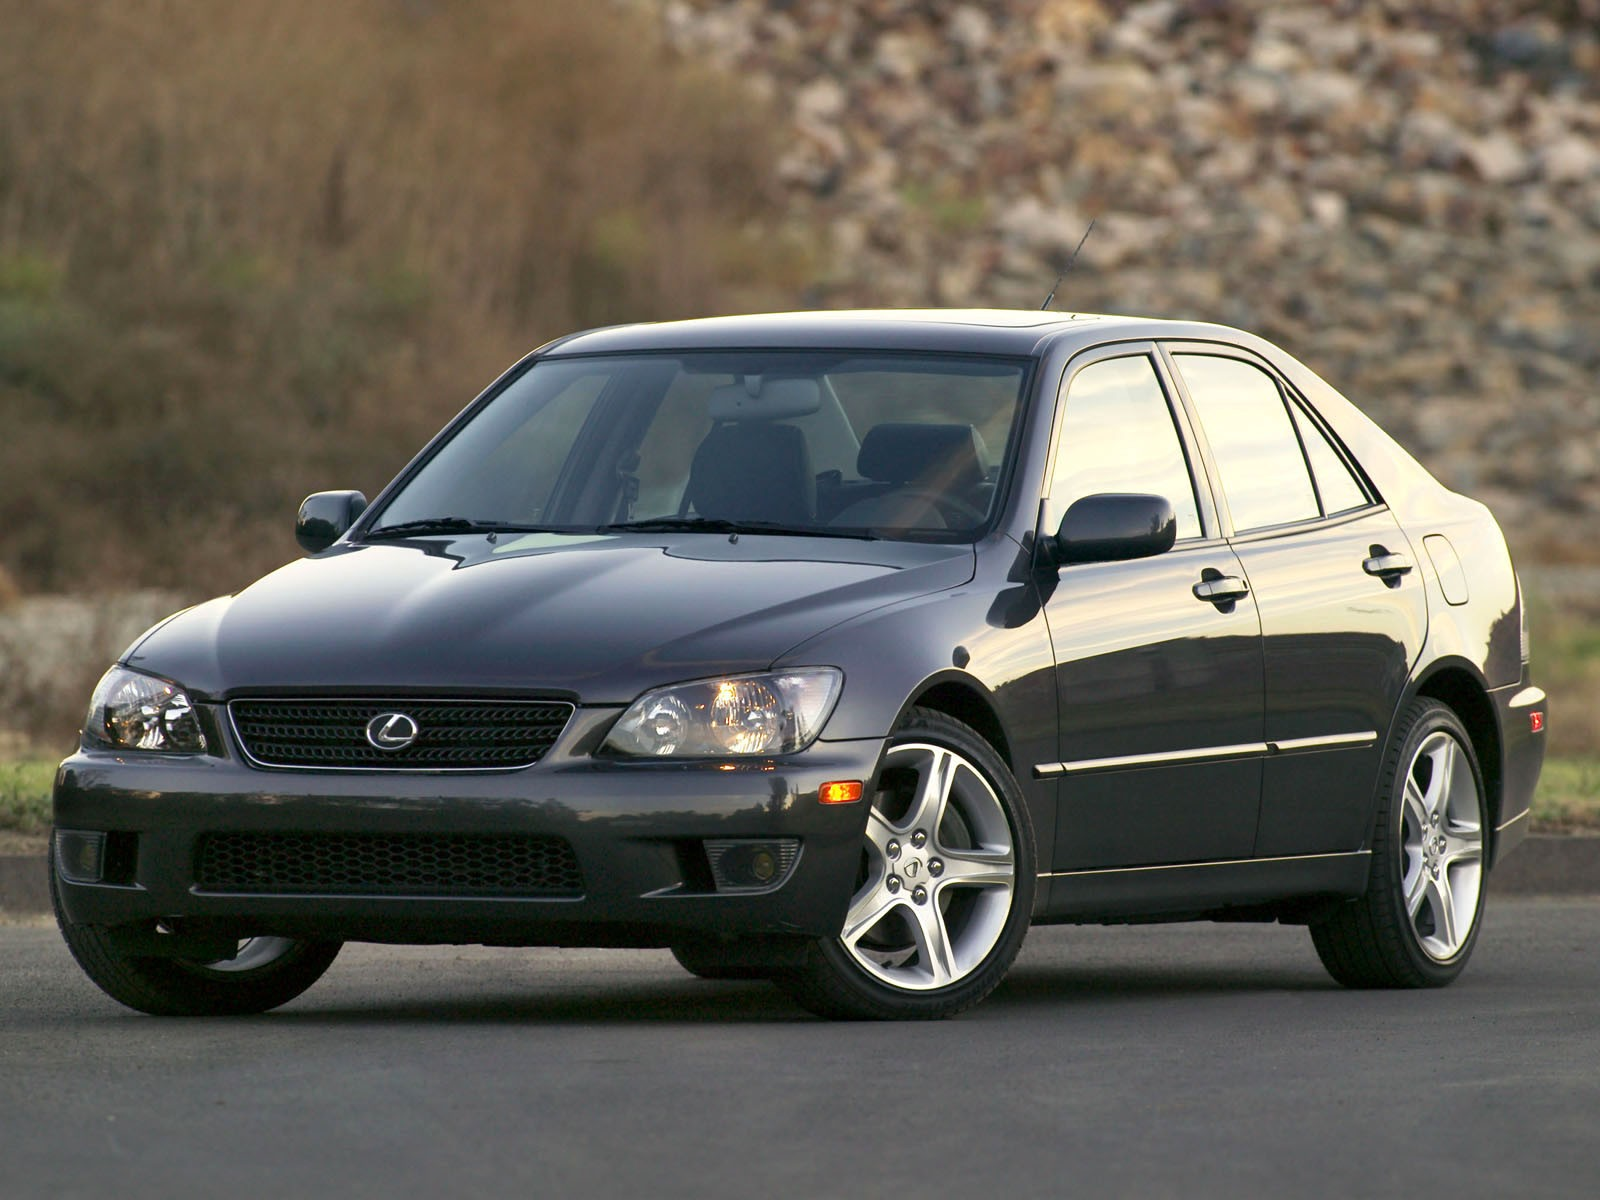 2002 lexus is 300 pictures cargurus. Black Bedroom Furniture Sets. Home Design Ideas